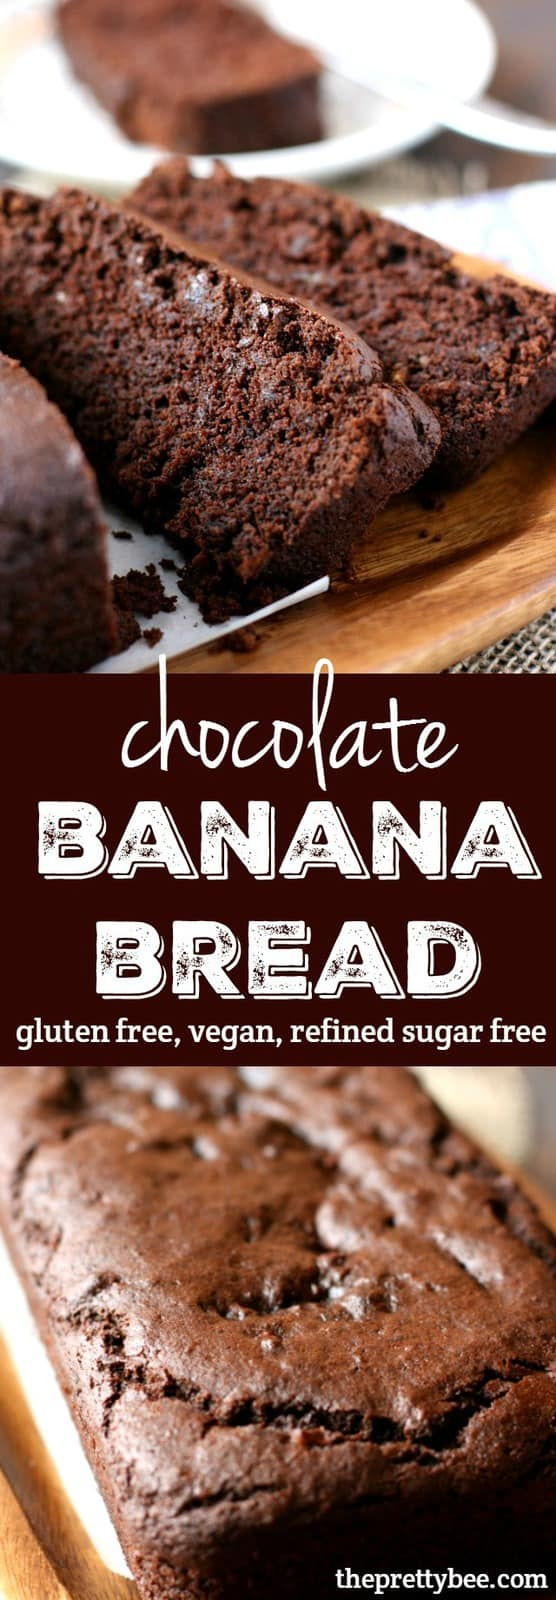 This chocolate banana bread is a healthier treat - it's refined sugar free! #glutenfree #vegan #refinedsugarfree #dairyfree